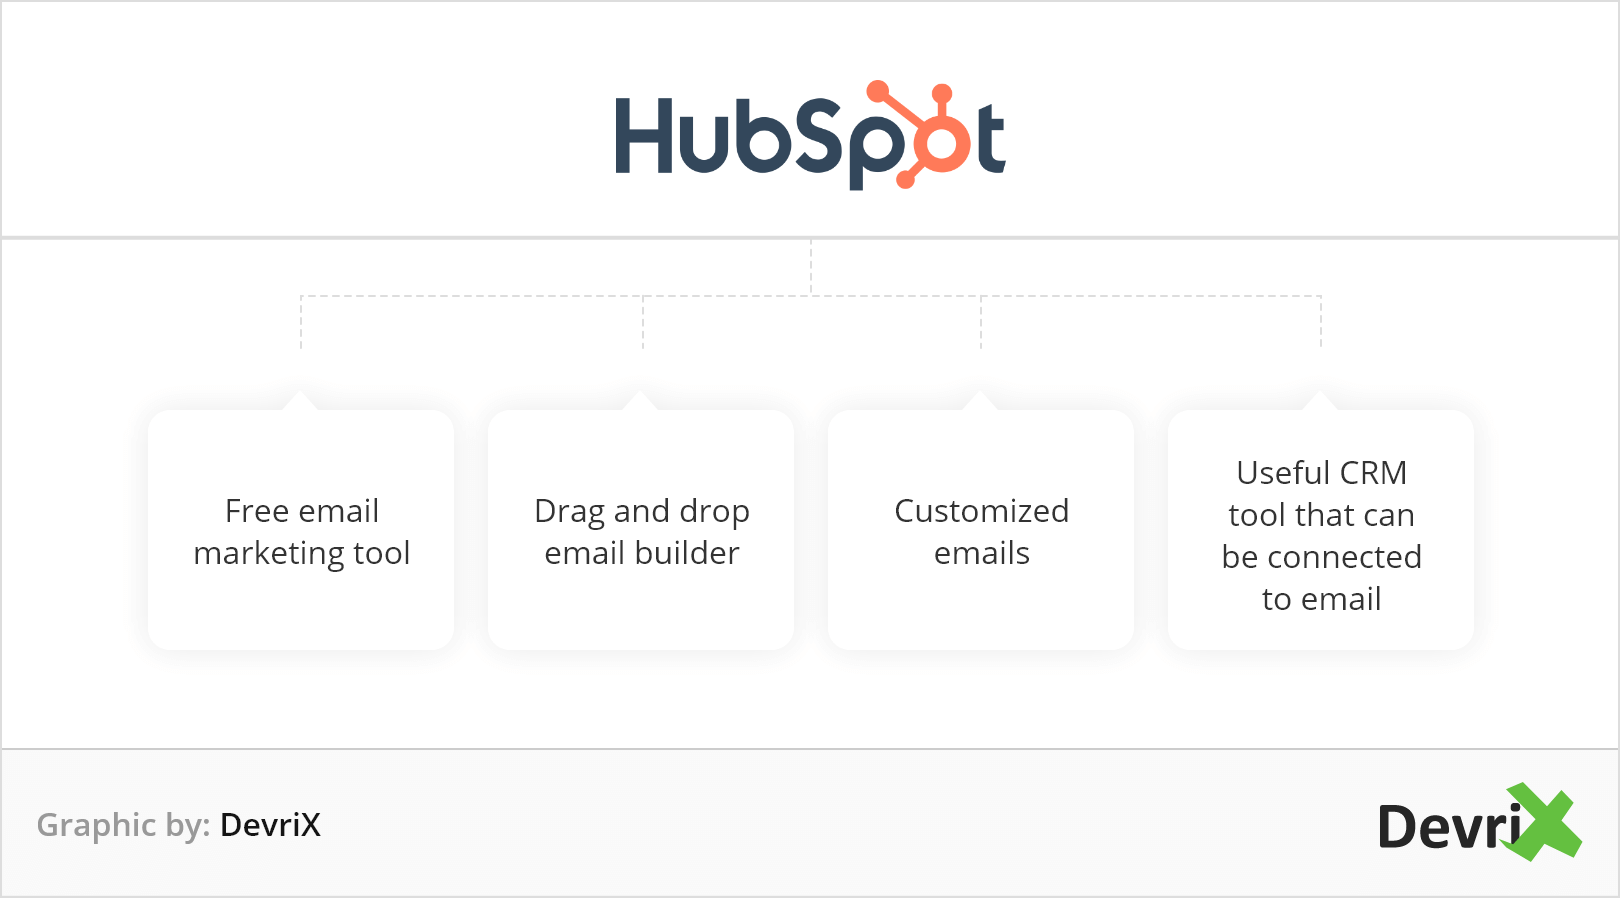 HubSpot benefits